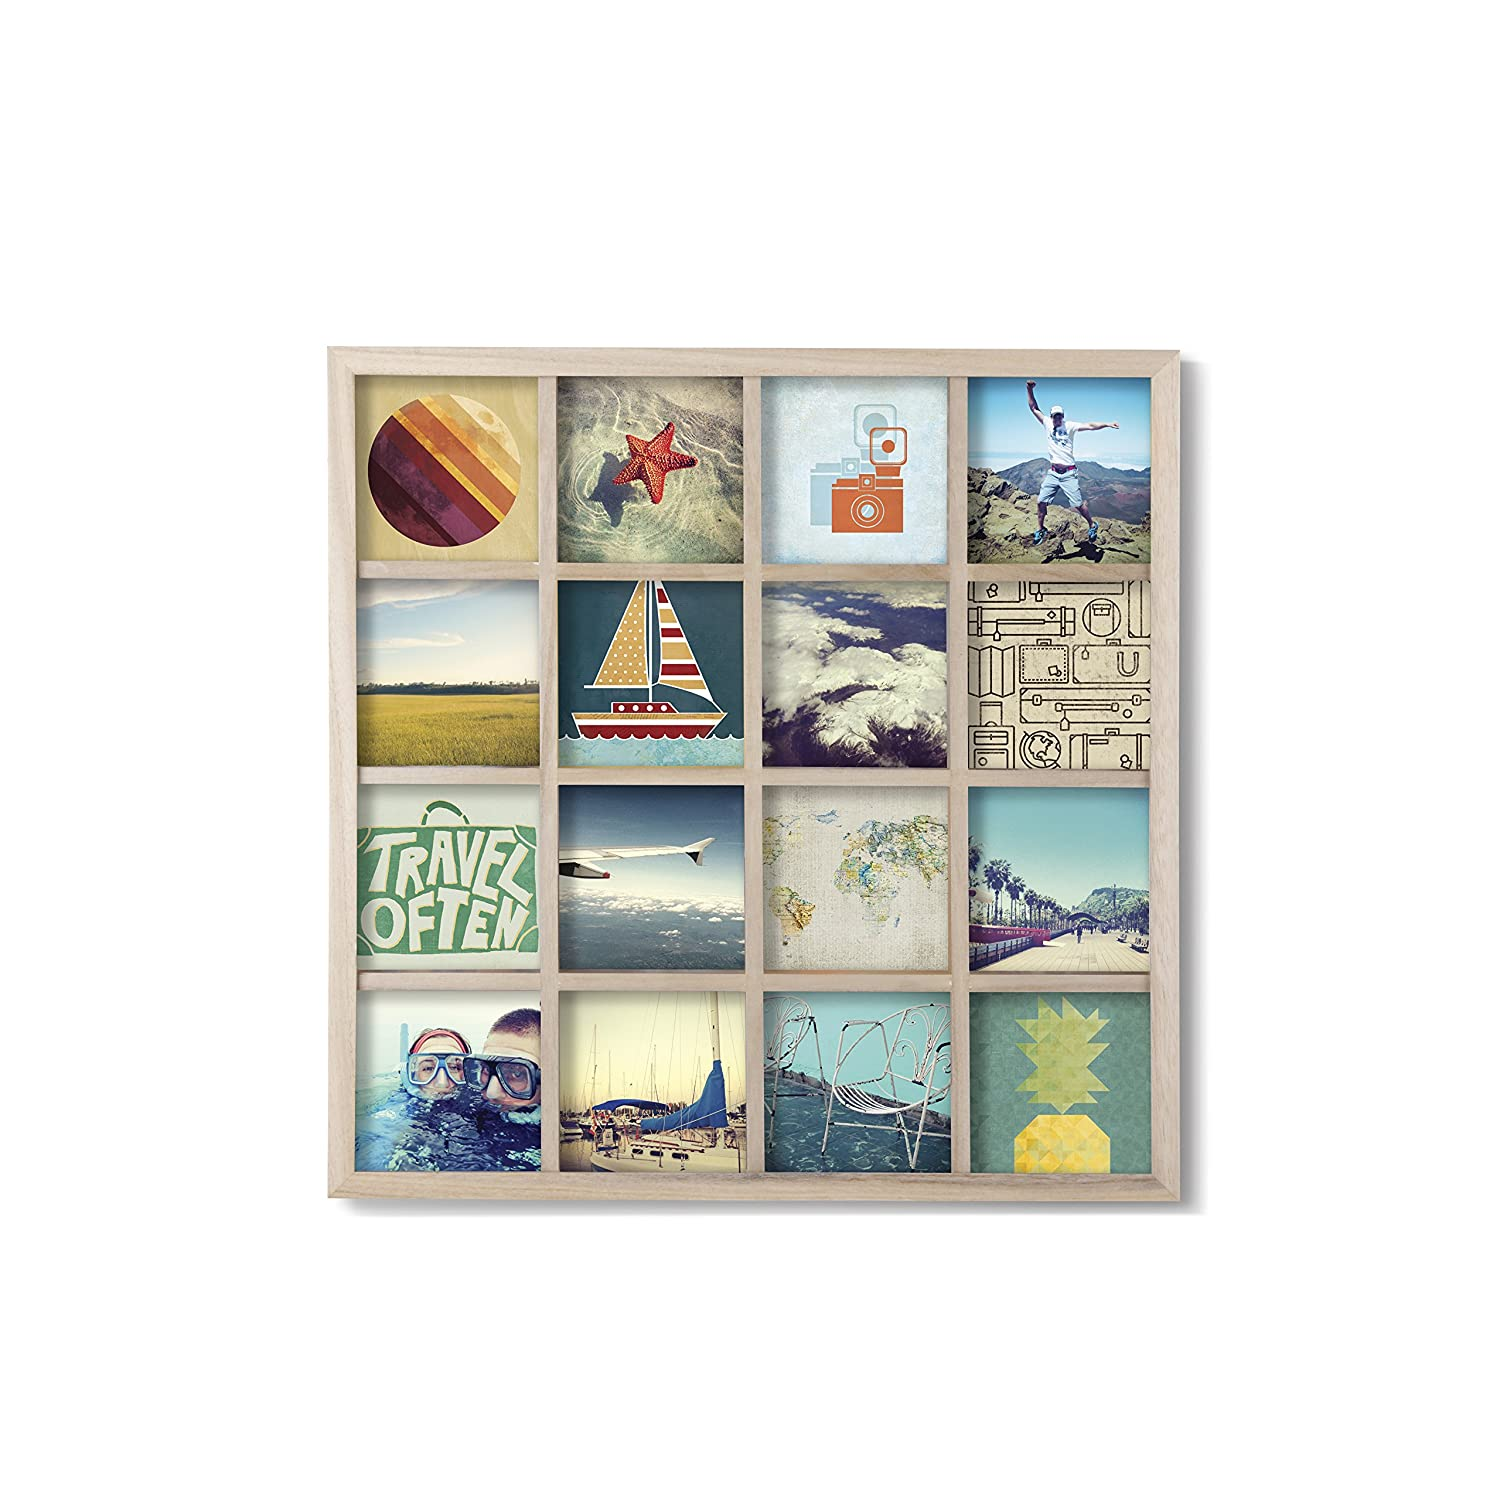 Amazon umbra gridart 4x4 picture frame diy gallery style amazon umbra gridart 4x4 picture frame diy gallery style multi picture photo collage frame displays 16 square 4 by 4 inch photos illustrations jeuxipadfo Images